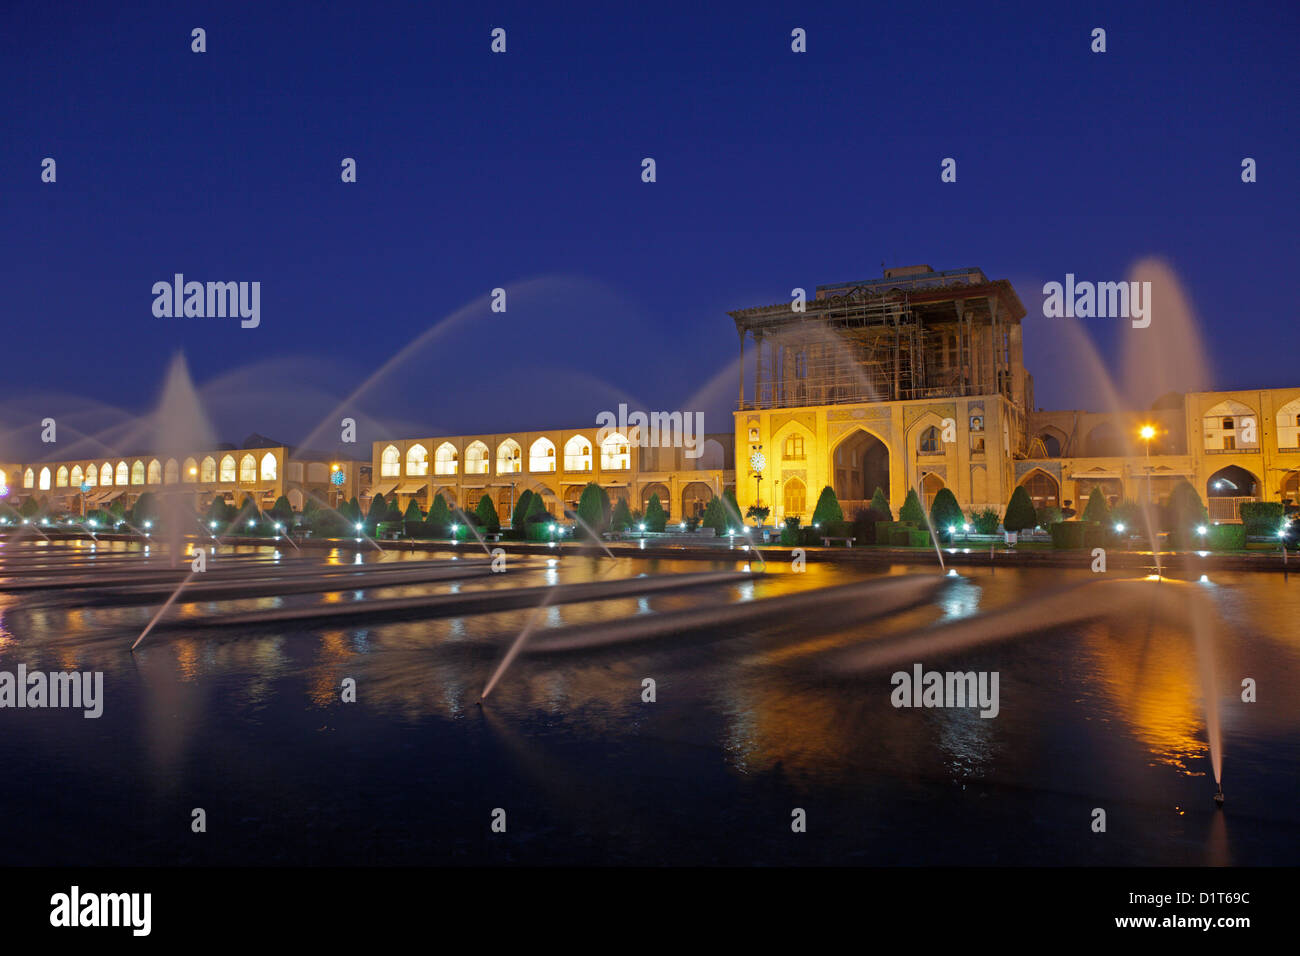 Ali Qapu palace at dusk in Naqsh-e Jahan Square, Isfahan, Iran Stock Photo